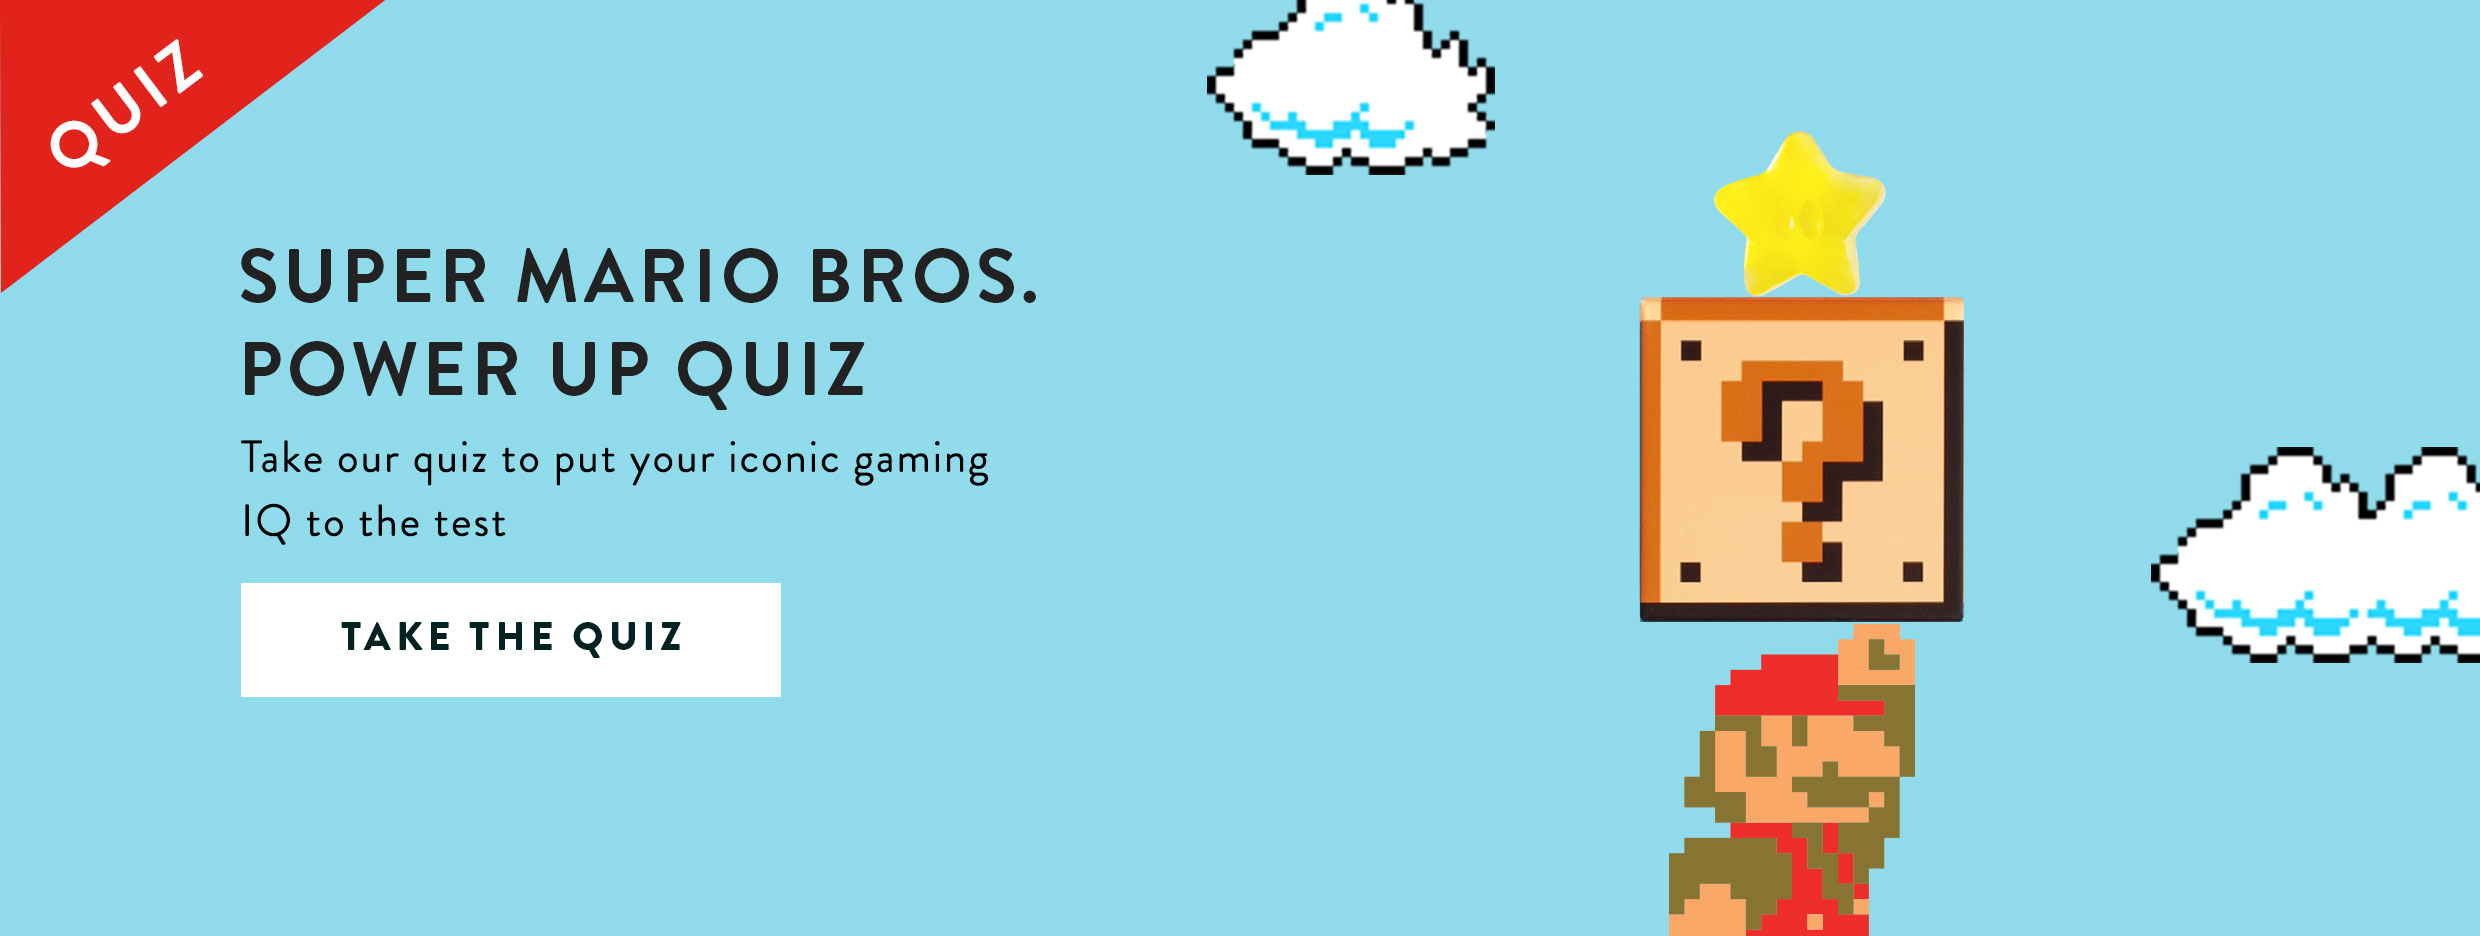 Super Mario Bros Power Up Quiz To Test Your Icon Gaming IQ